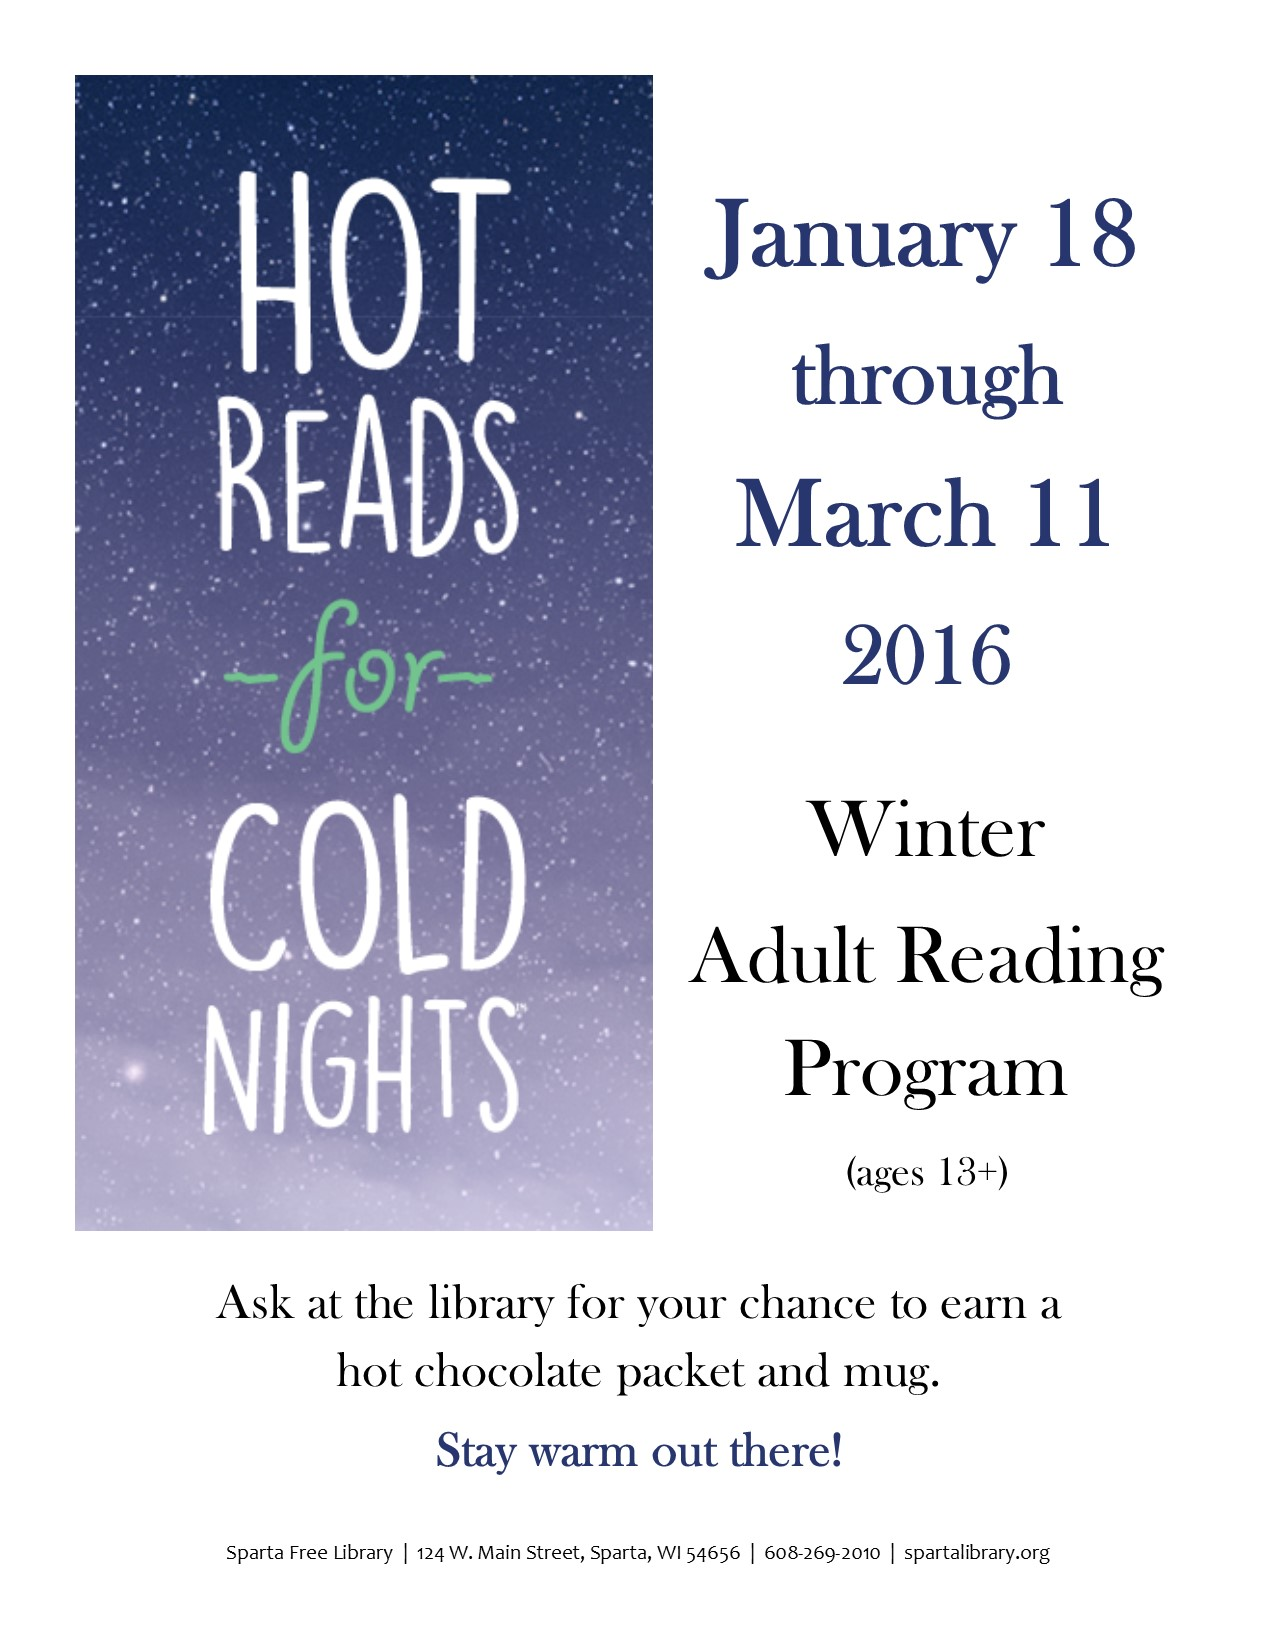 Hot Reads Poster 2016 image